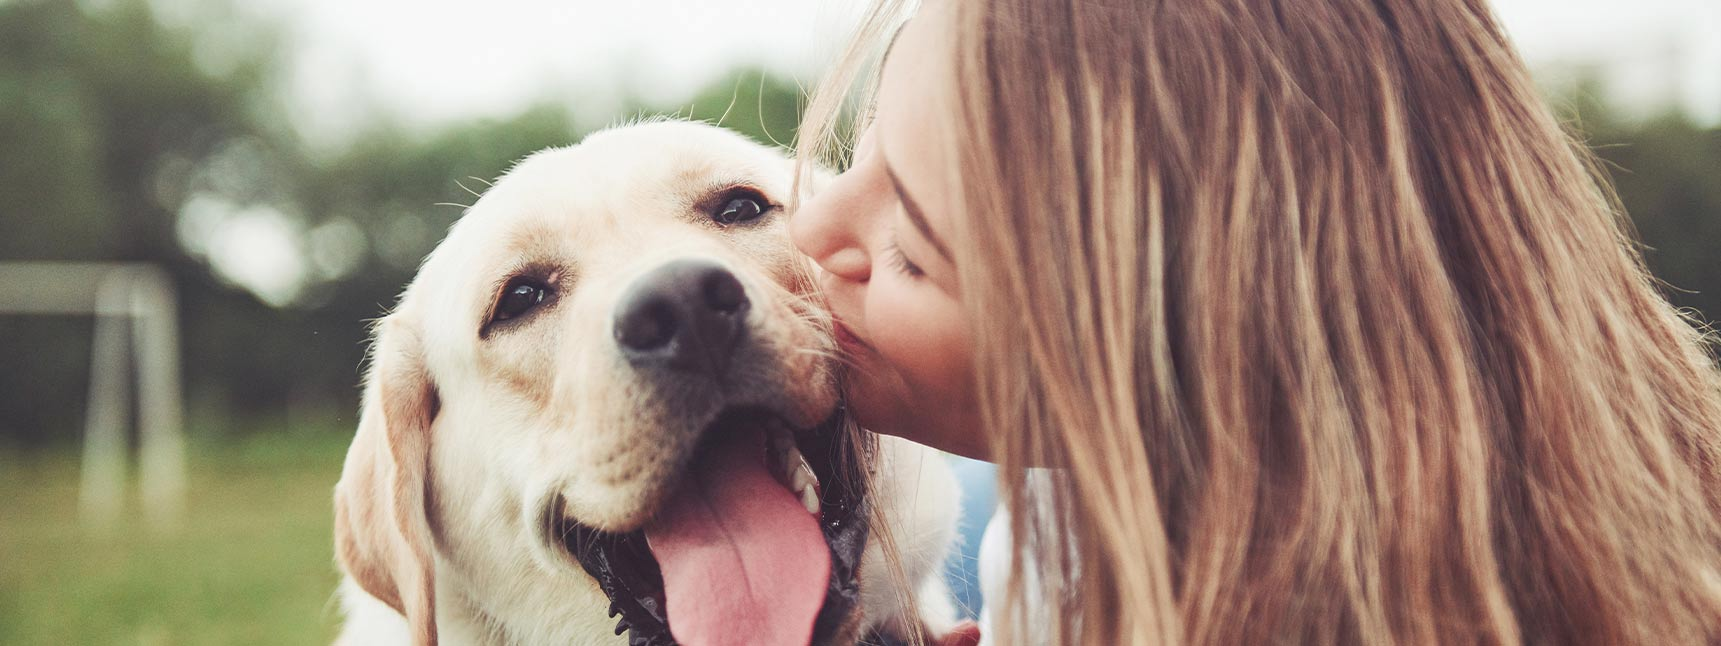 We care about your pets at Gabriel Park Veterinary Clinic in Portland OR